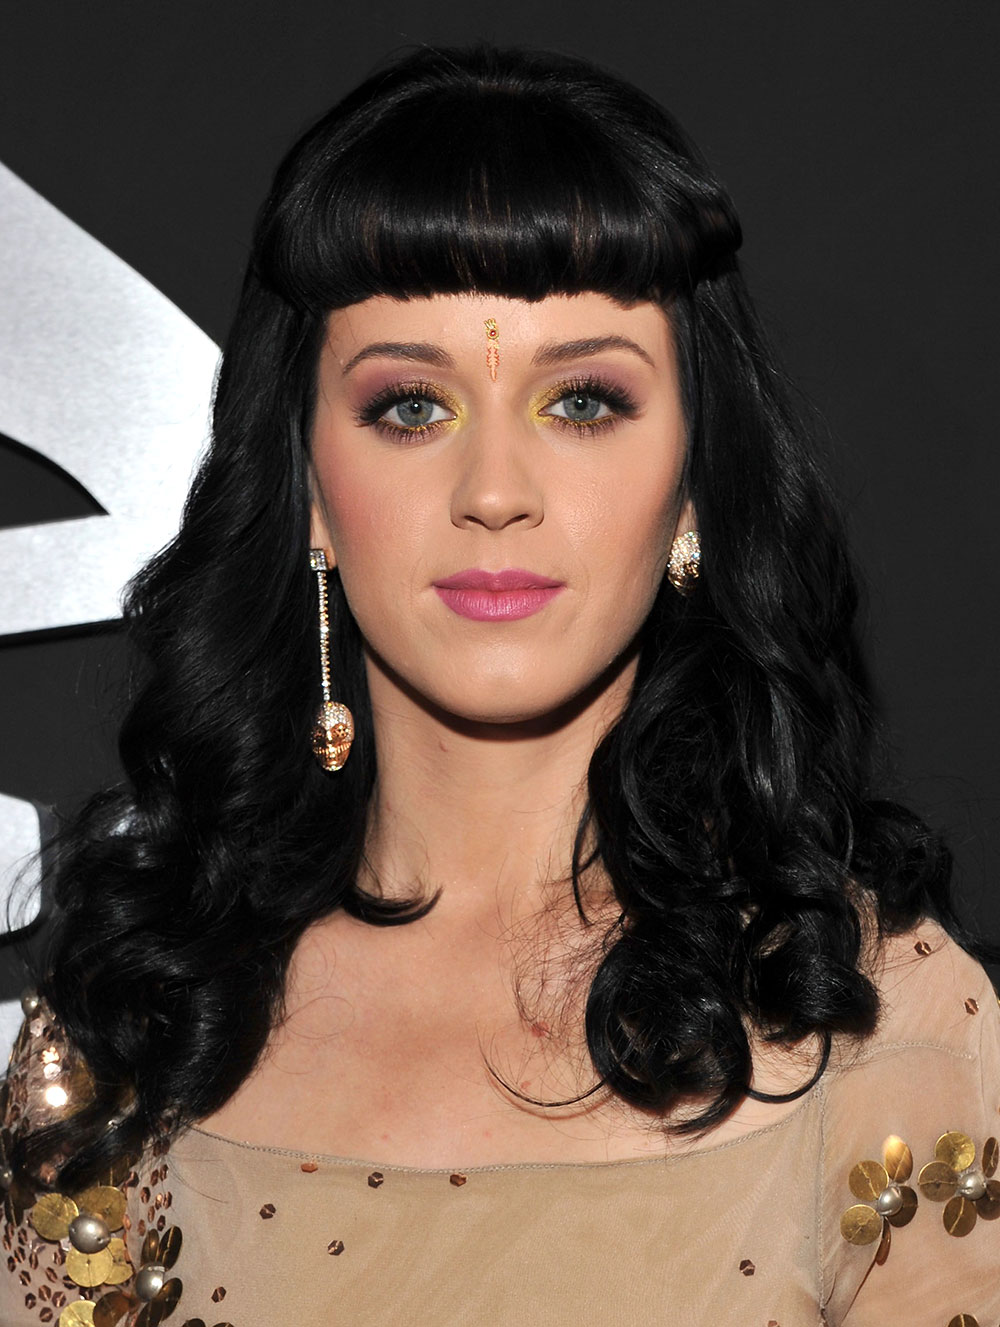 Katy Perry makeup at 2010 Grammys